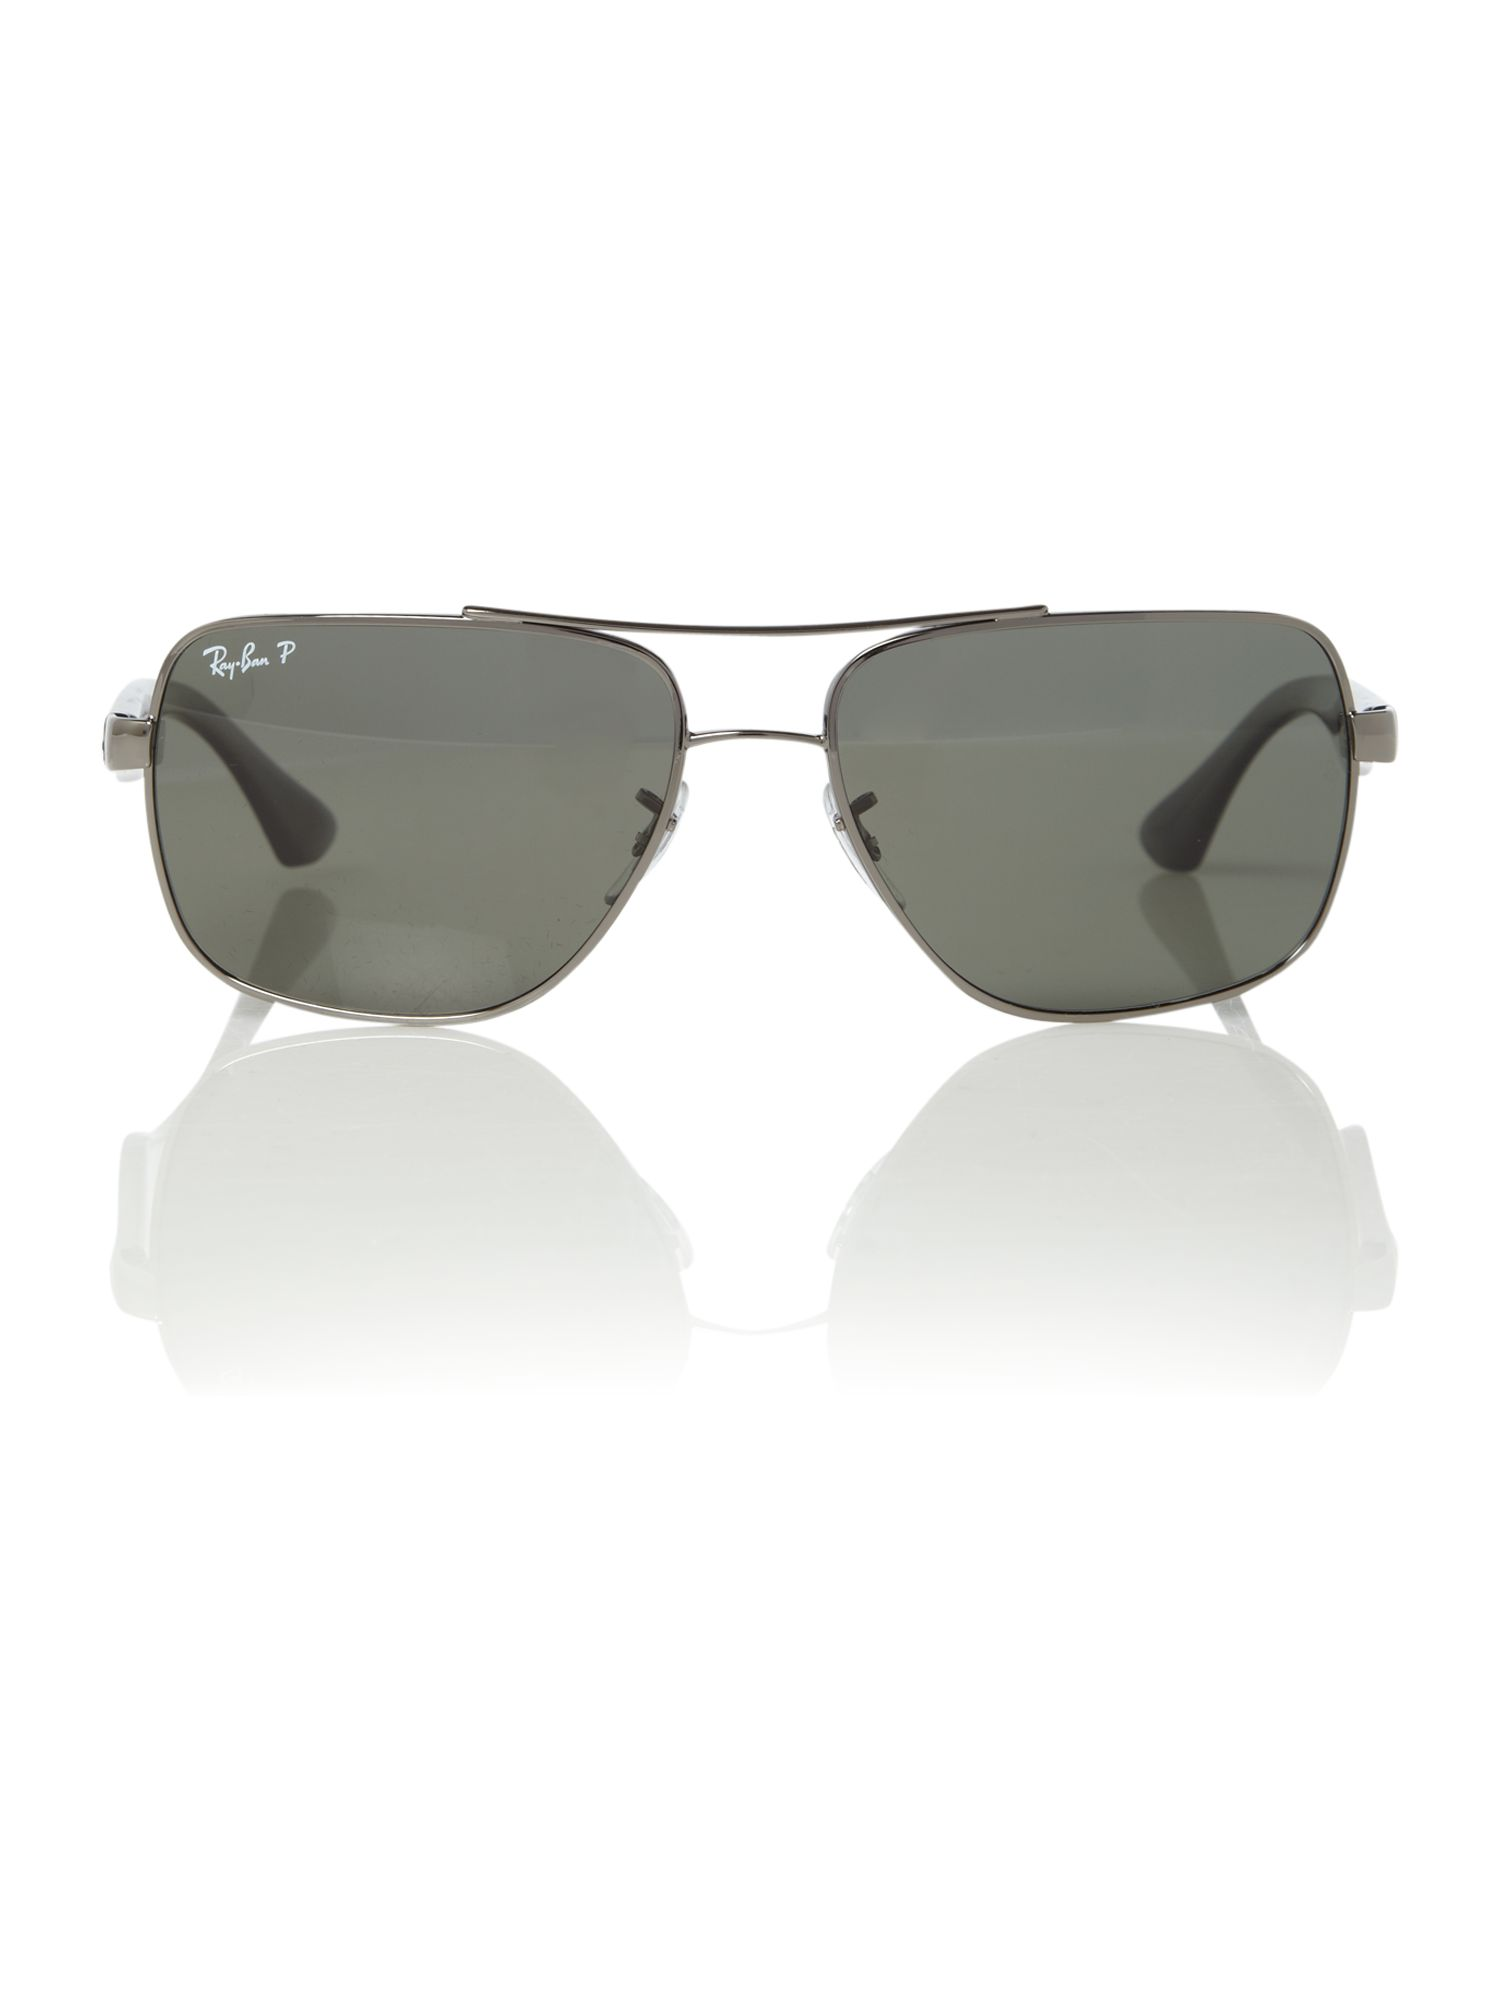 Mens RB3483 Square Sunglasses